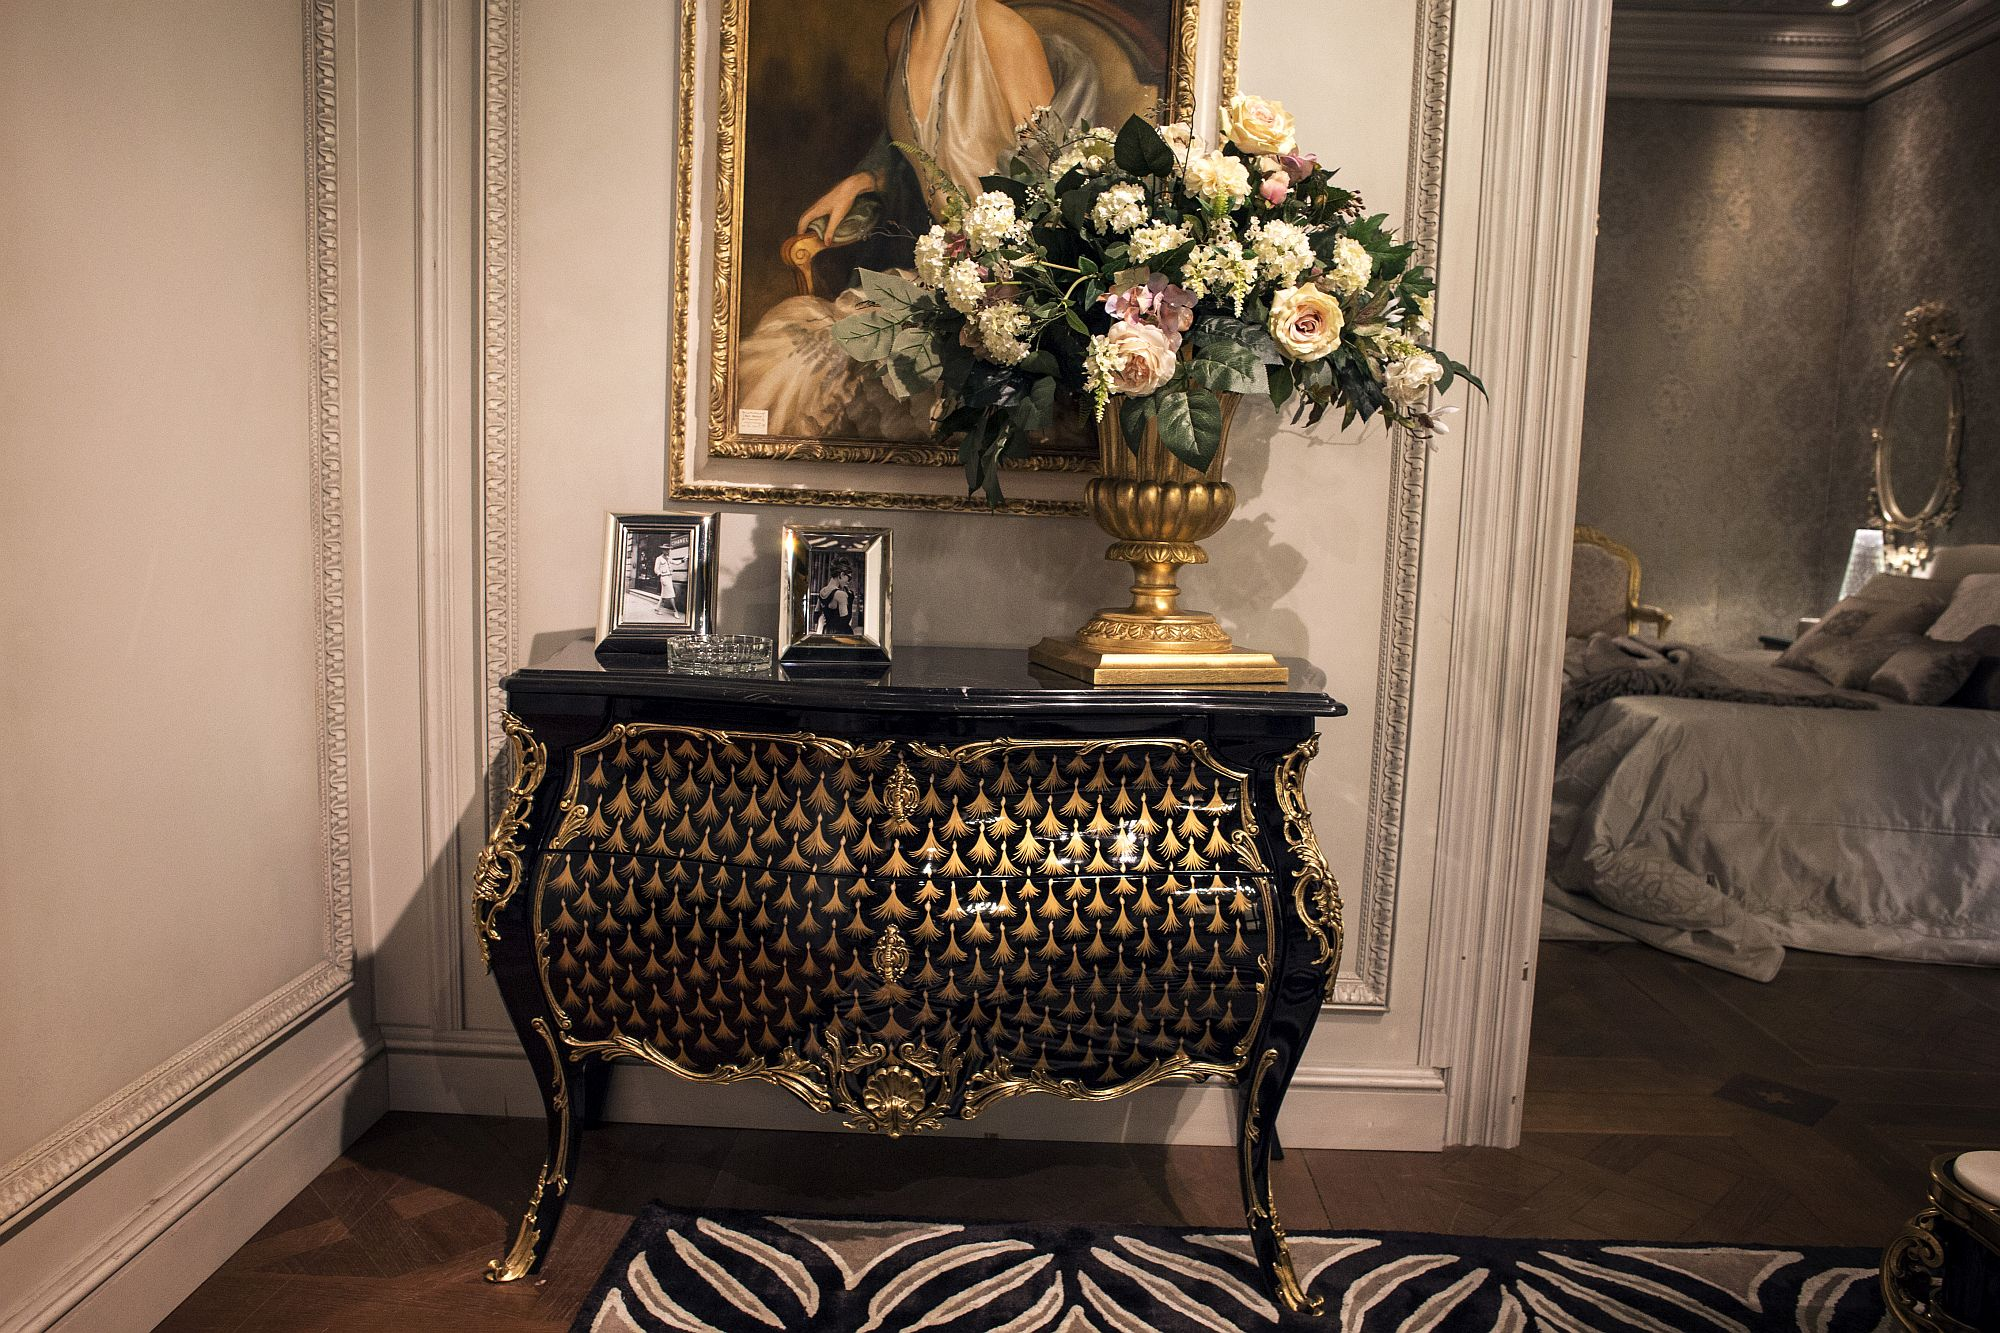 Classic-entry-console-table-in-balck-and-gold-decorated-beautifully